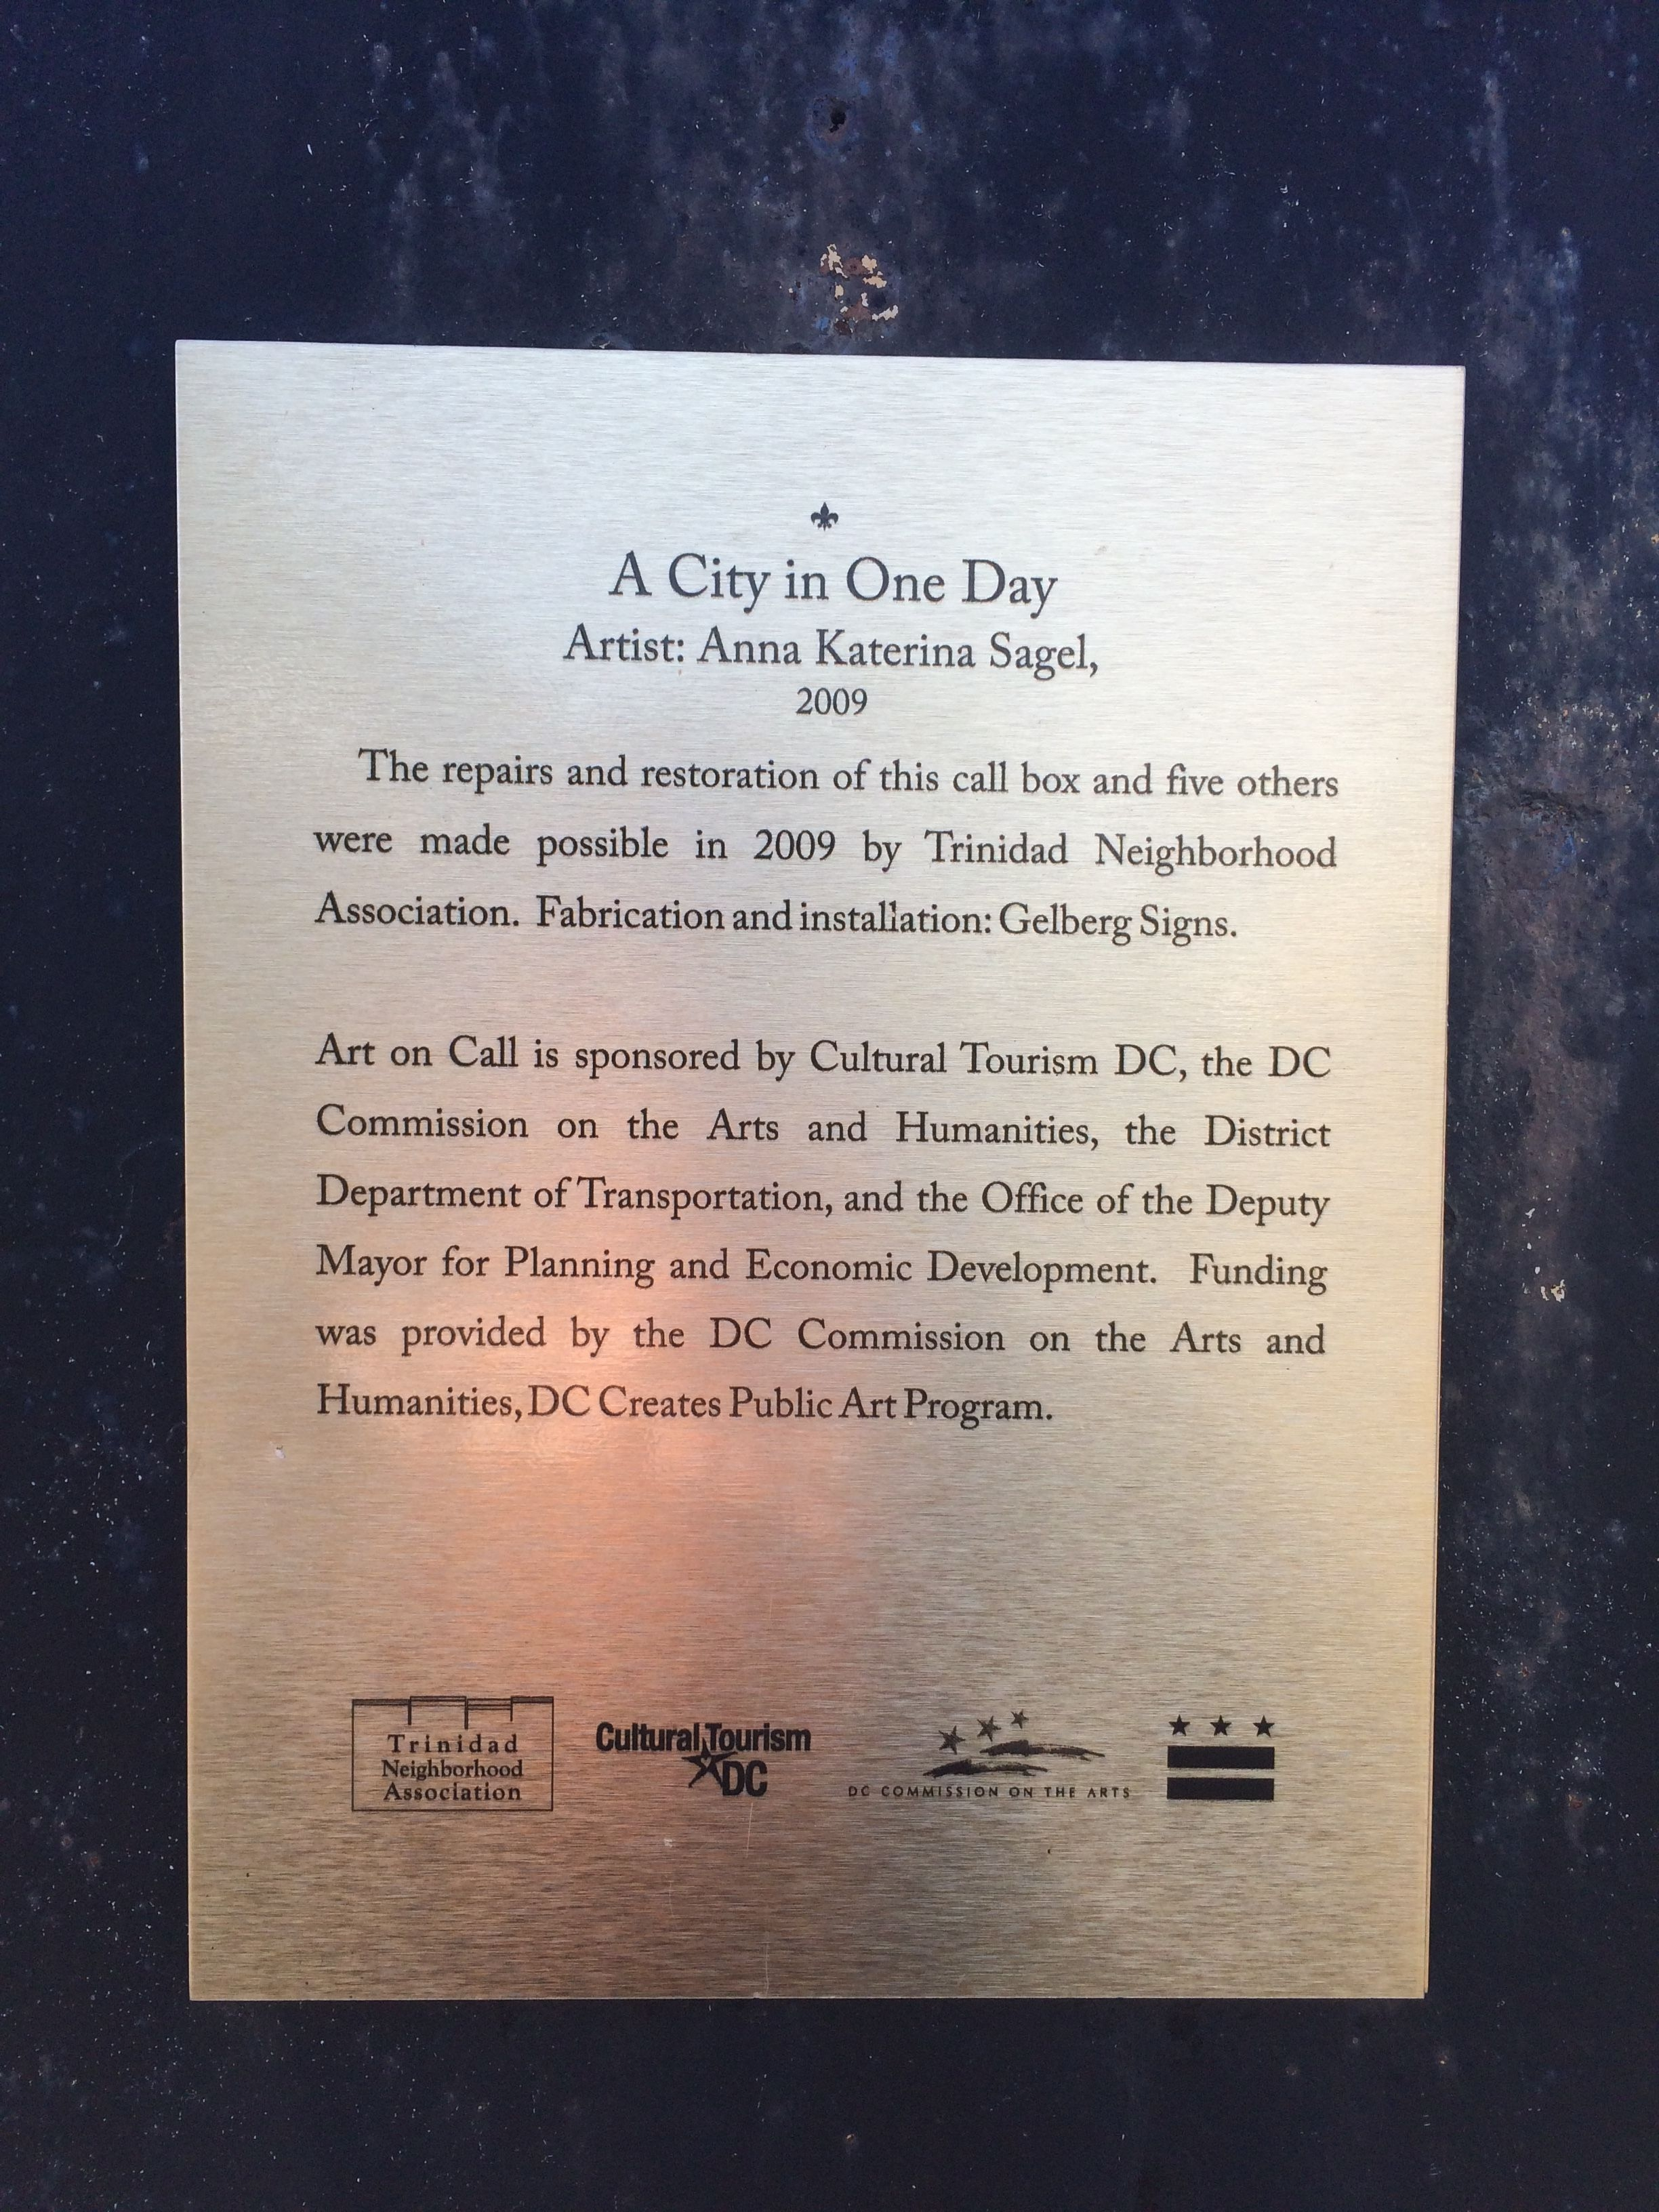 A City in One Day Marker